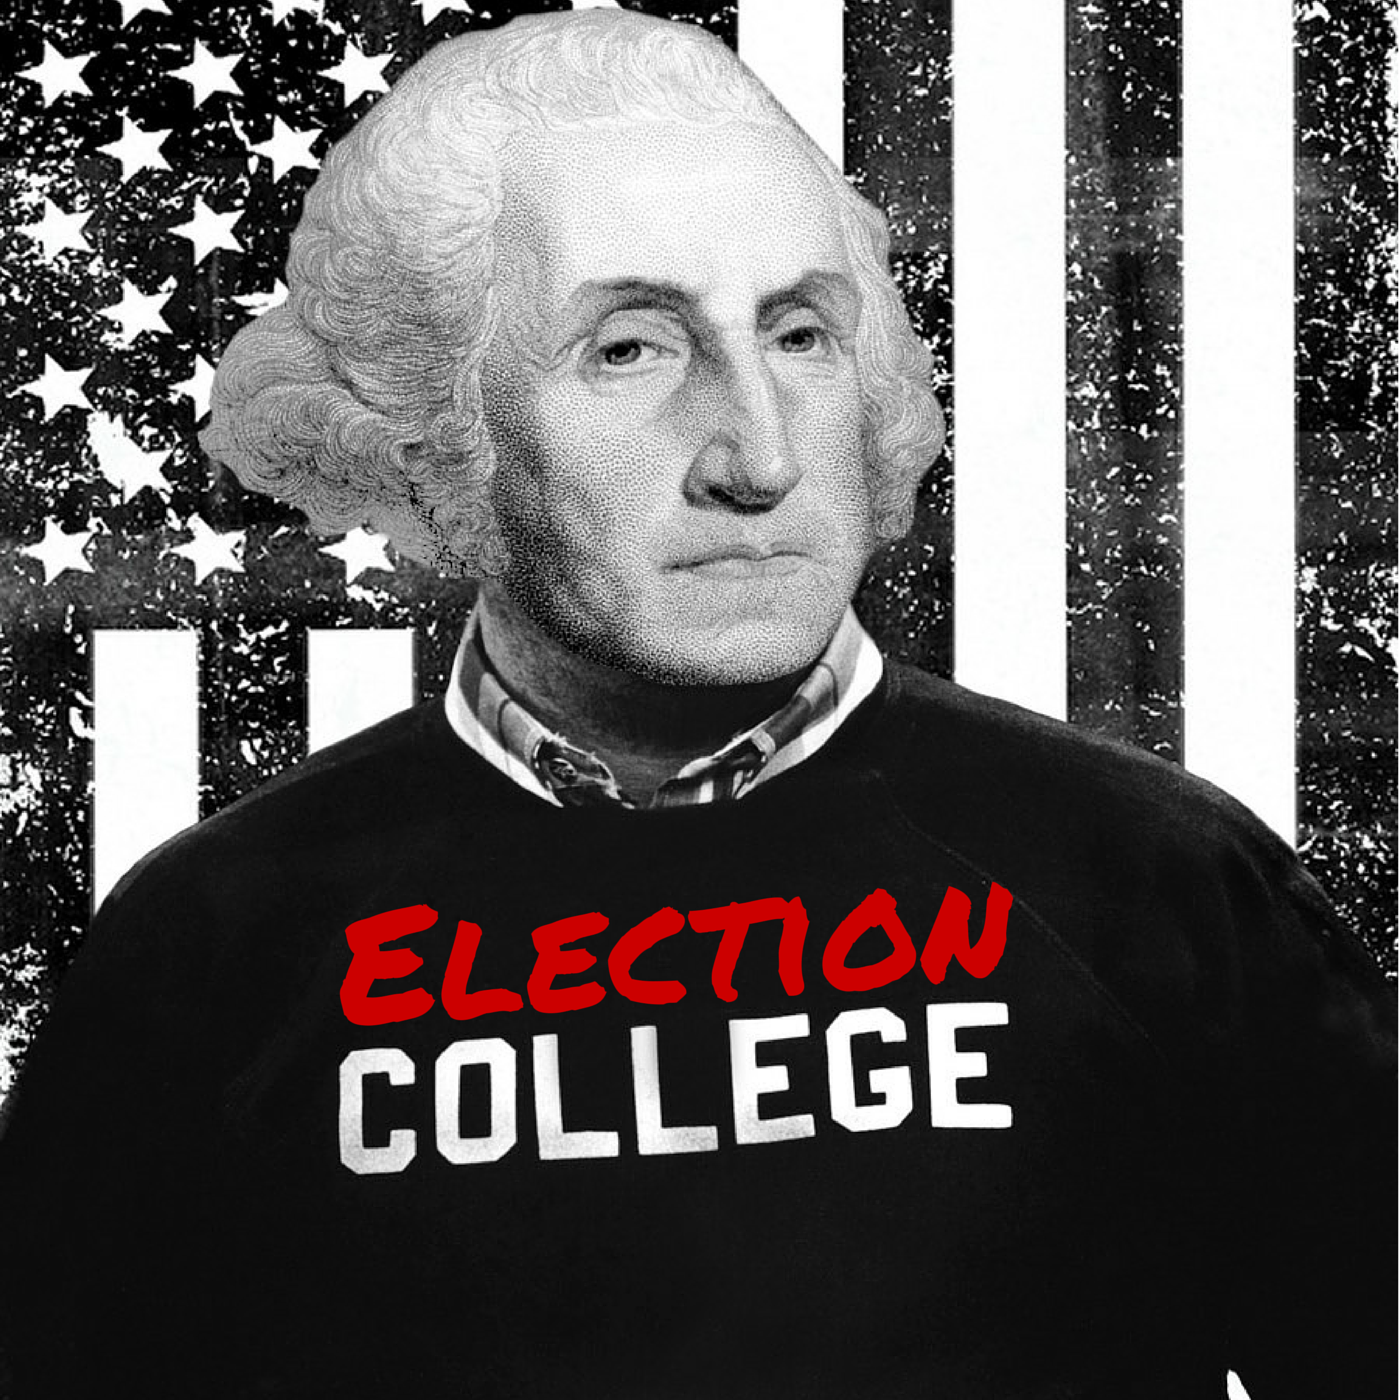 Florida Can't Decide - Election of 2000 | Episode #074 | Election College: United States Presidential Election History